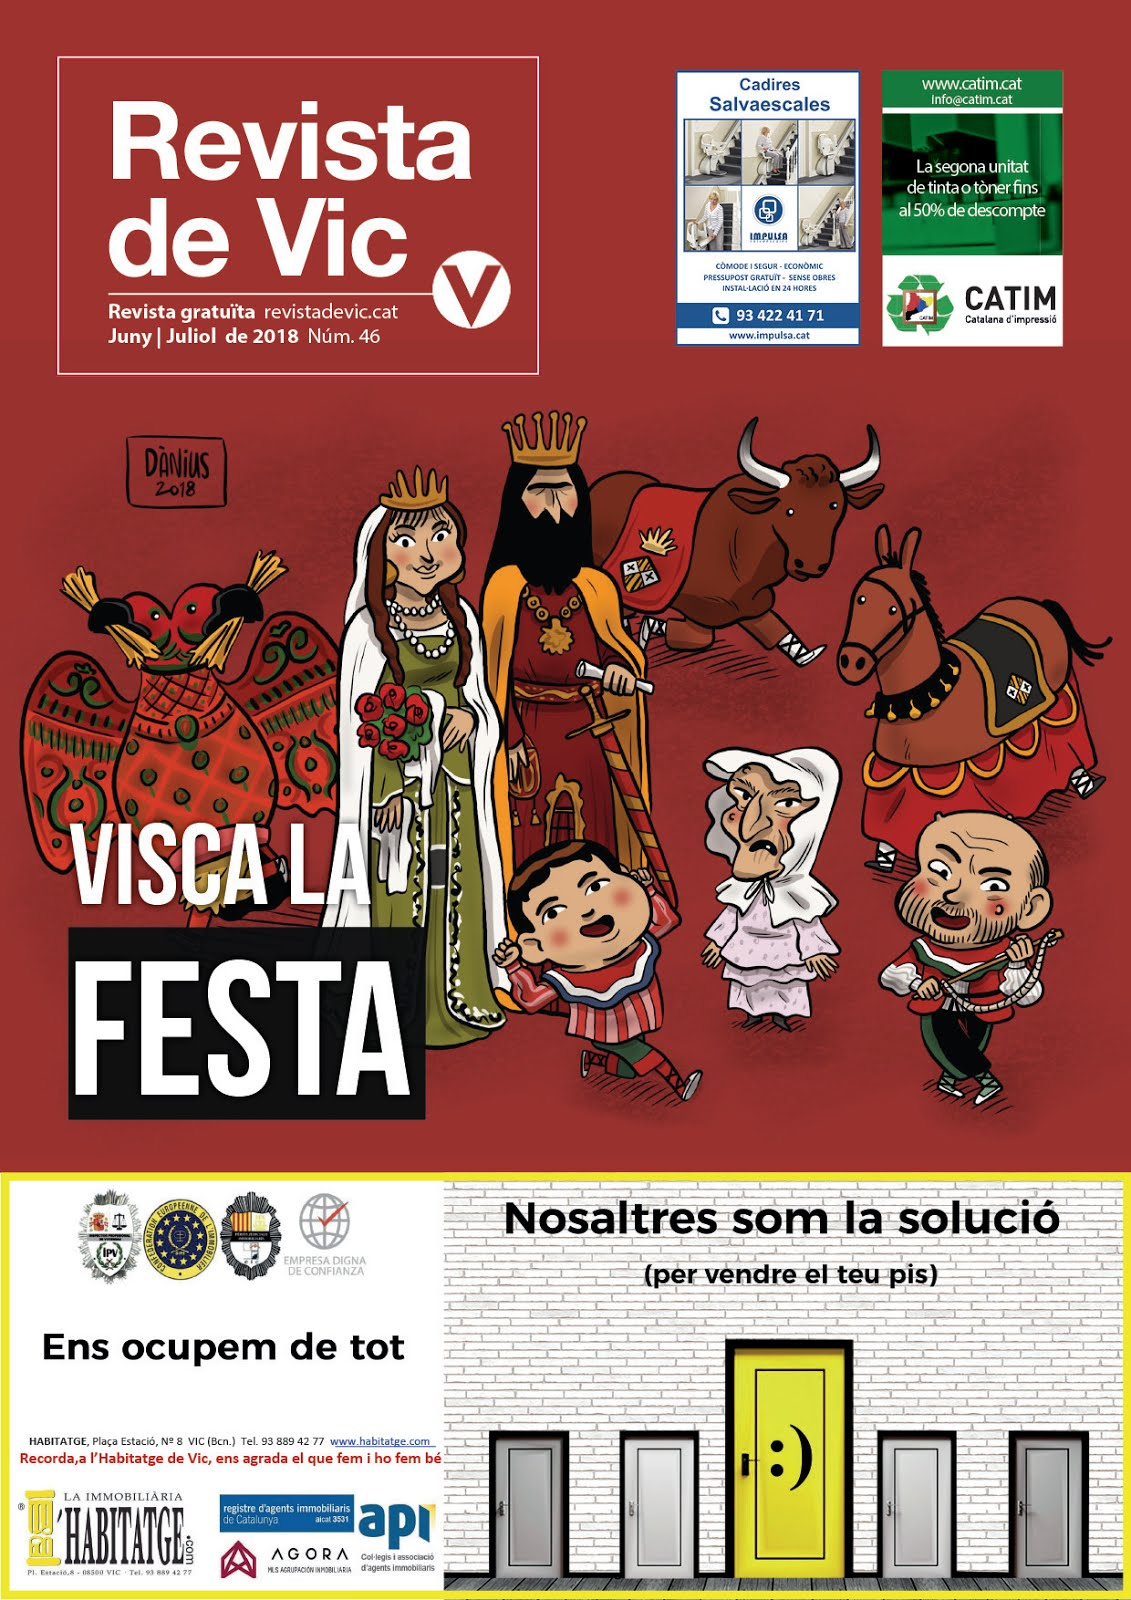 REVISTA DE VIC NÚMERO 46